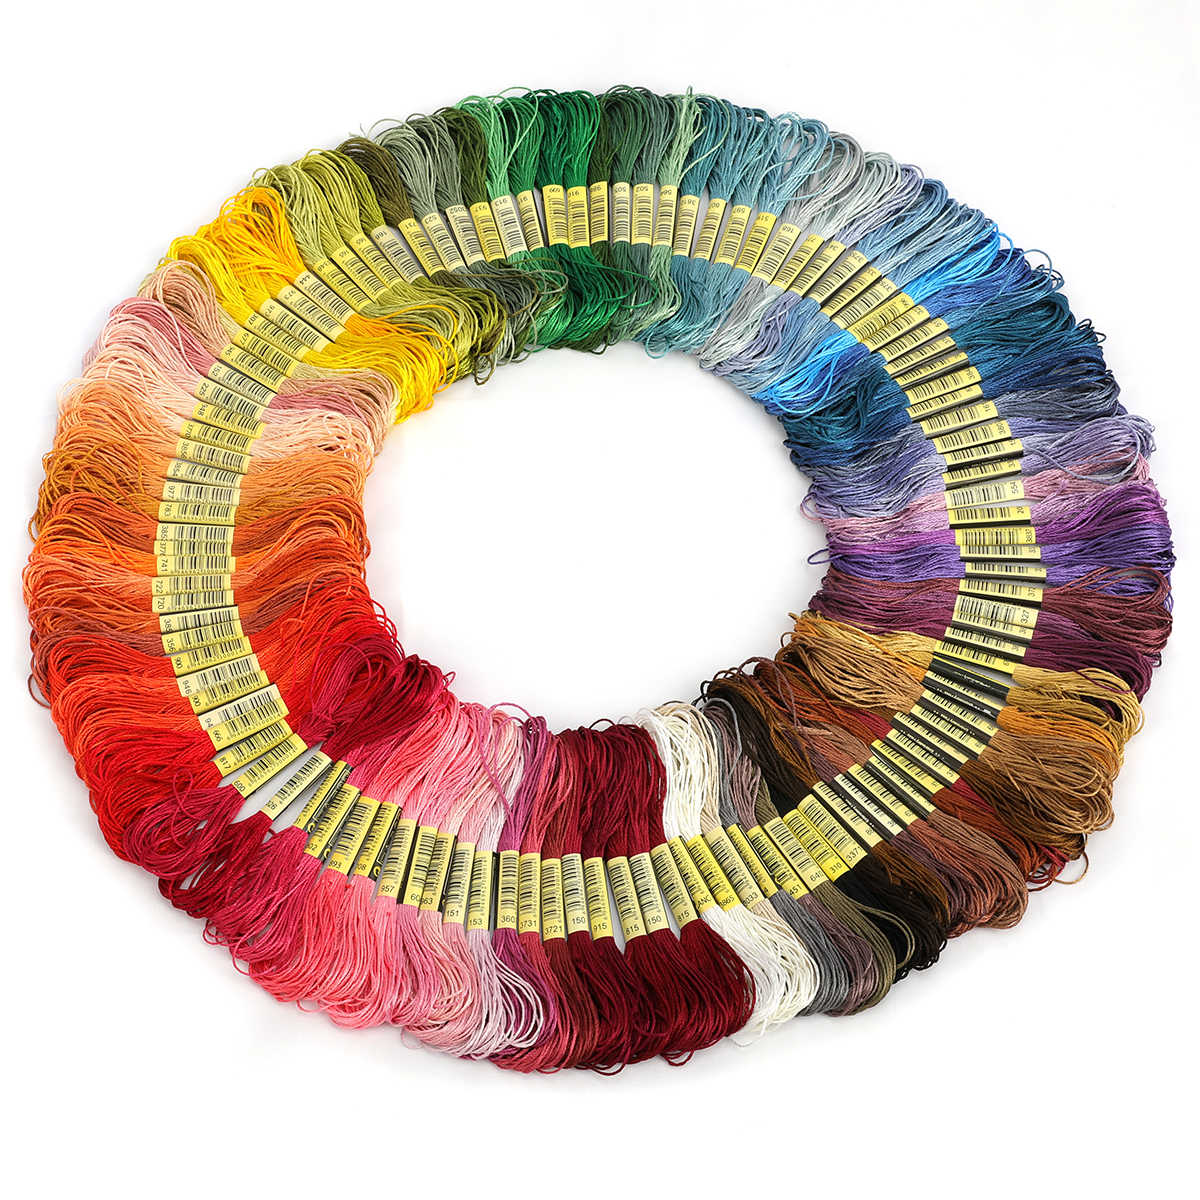 36/50/100/150 Skeins Coloured Embroidery Thread Cotton Cross needle Craft Sewing Floss kit Cross-Stitch Thread DIY Sewing Tools